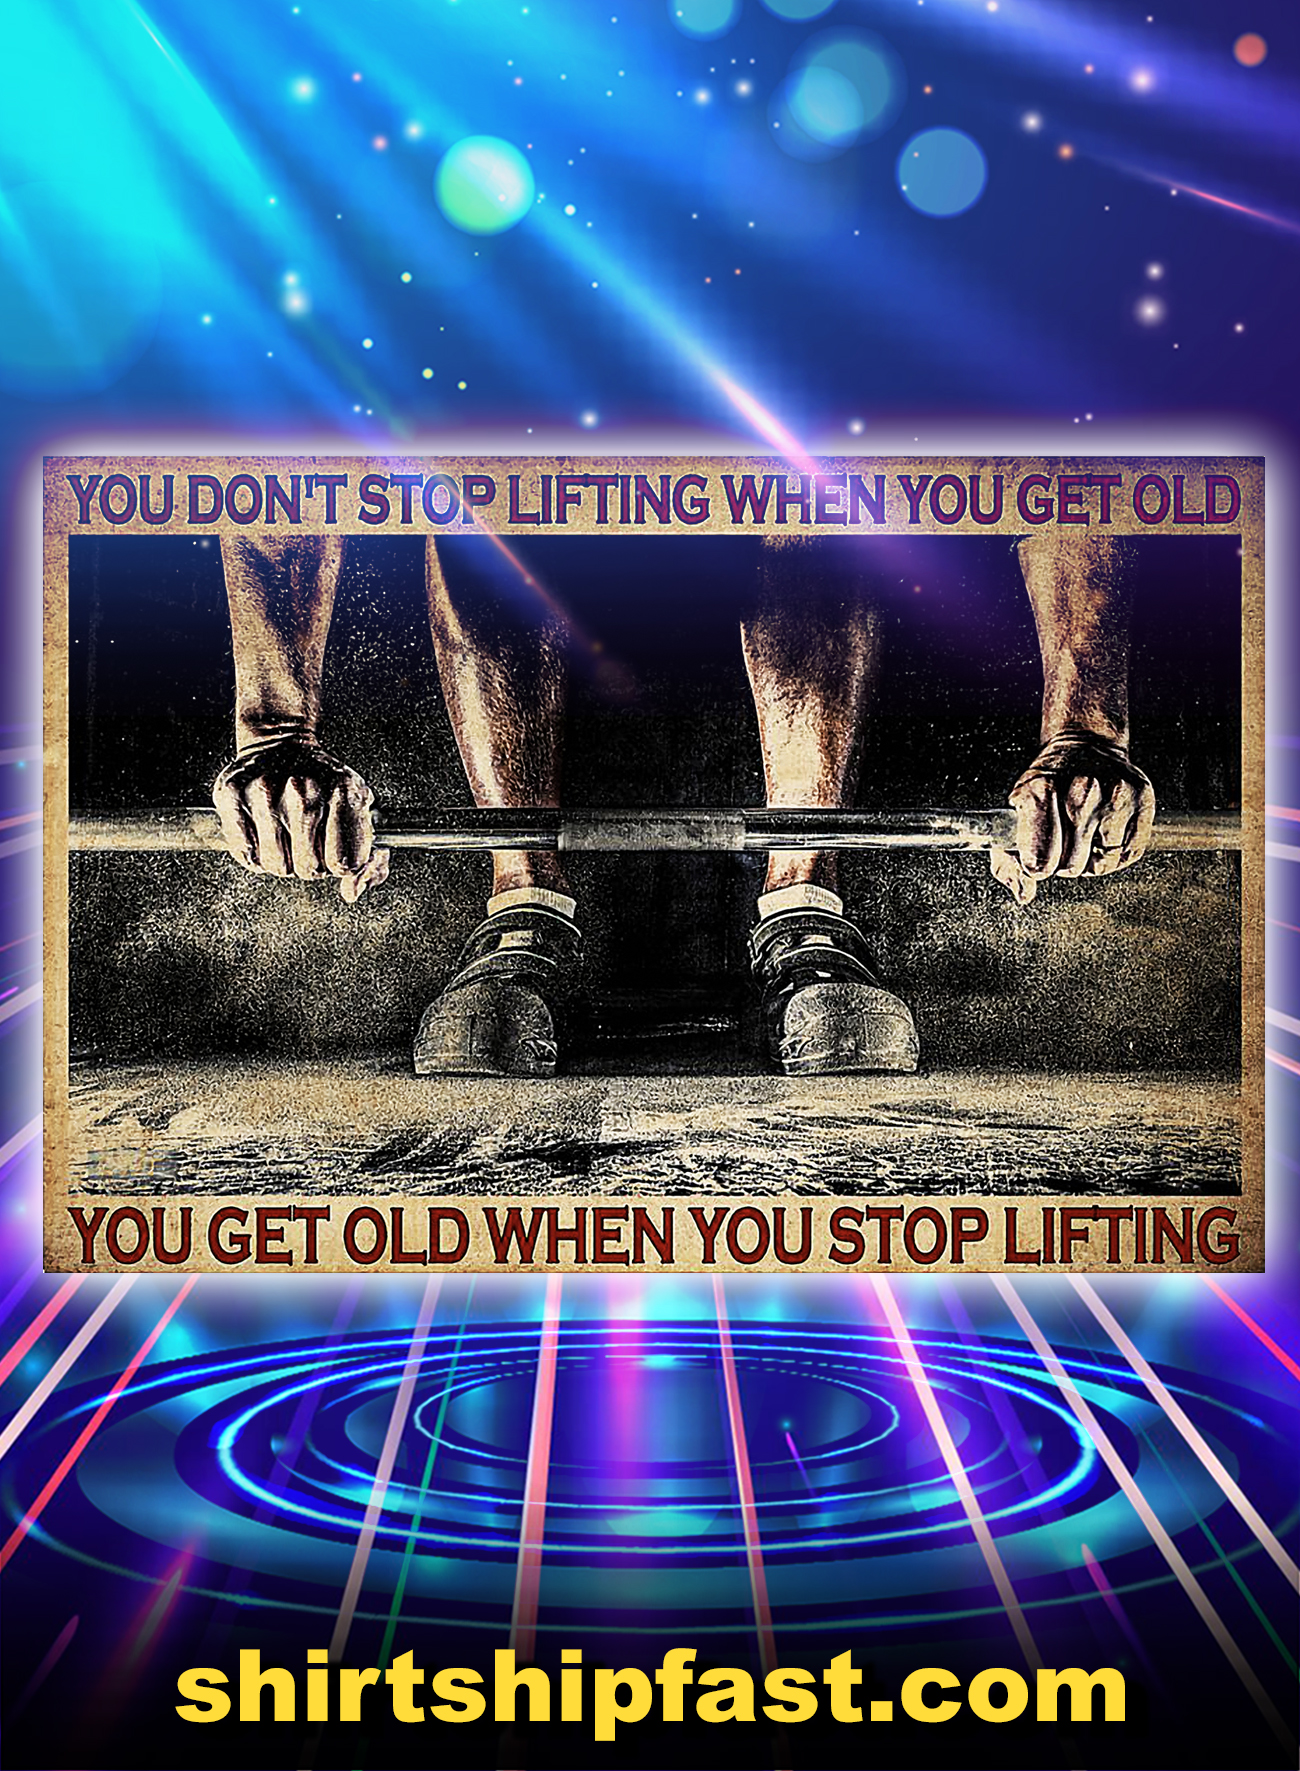 FITNESS YOU DON'T STOP LIFTING WHEN YOU GET OLD POSTER - A4